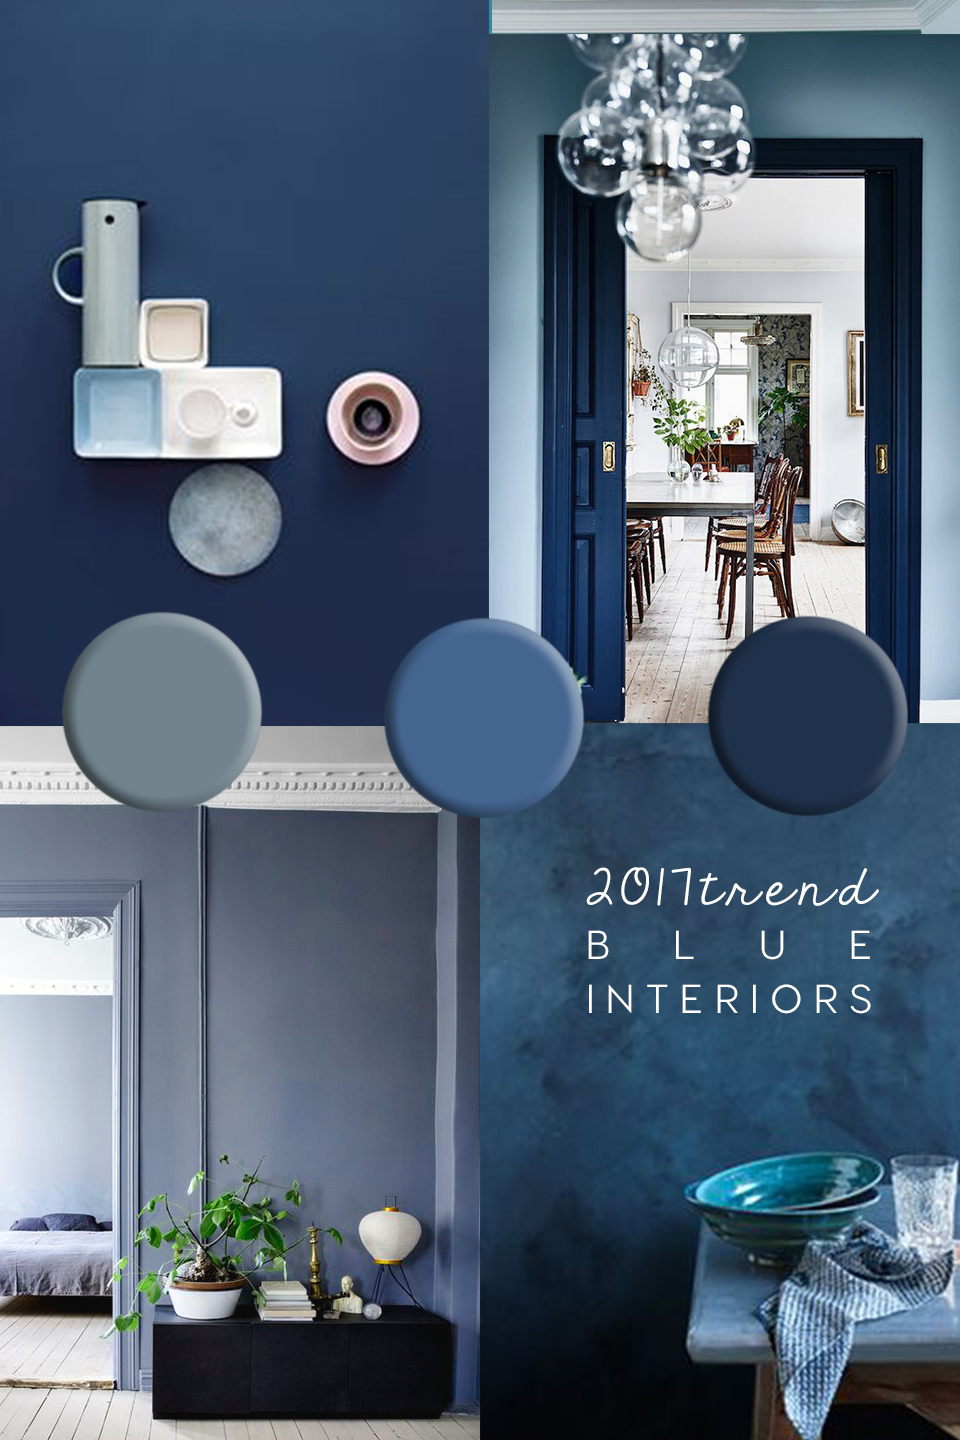 2016 Paint Trends Blue Interior Trend Paint And Home Decor Inspiration In Blue